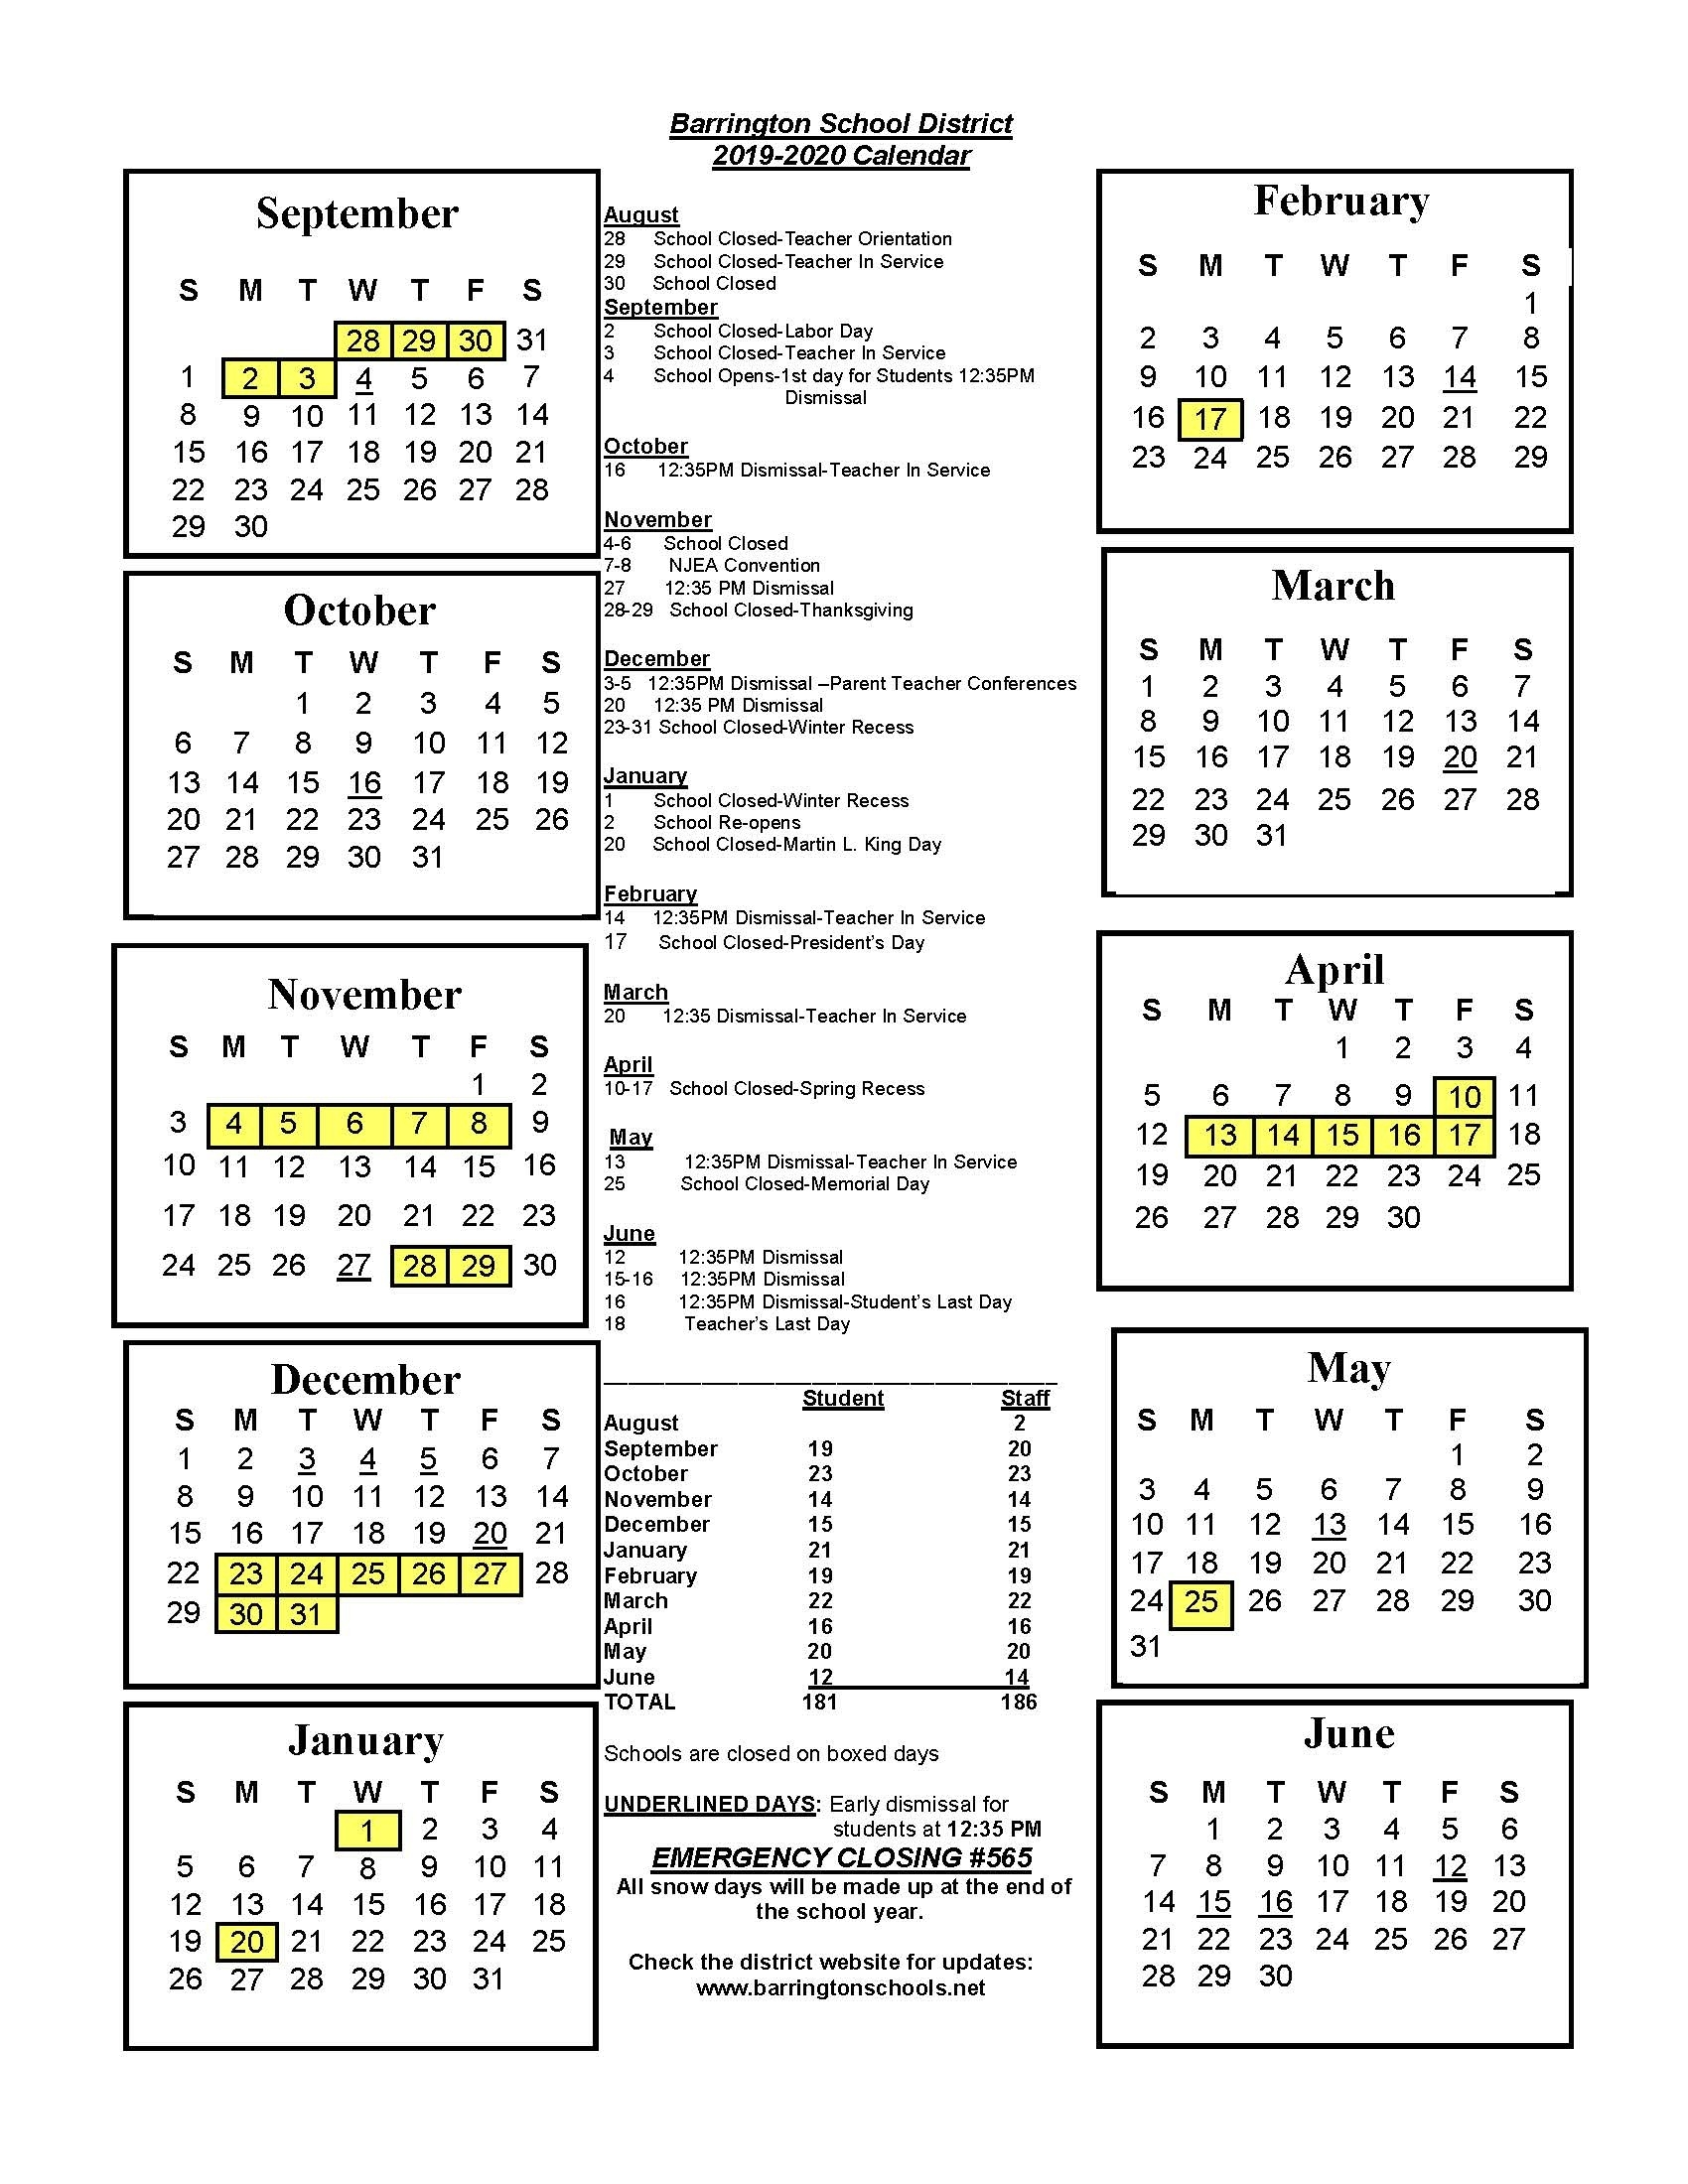 District Calendar - Barrington School District_School Calendar Rhode Island